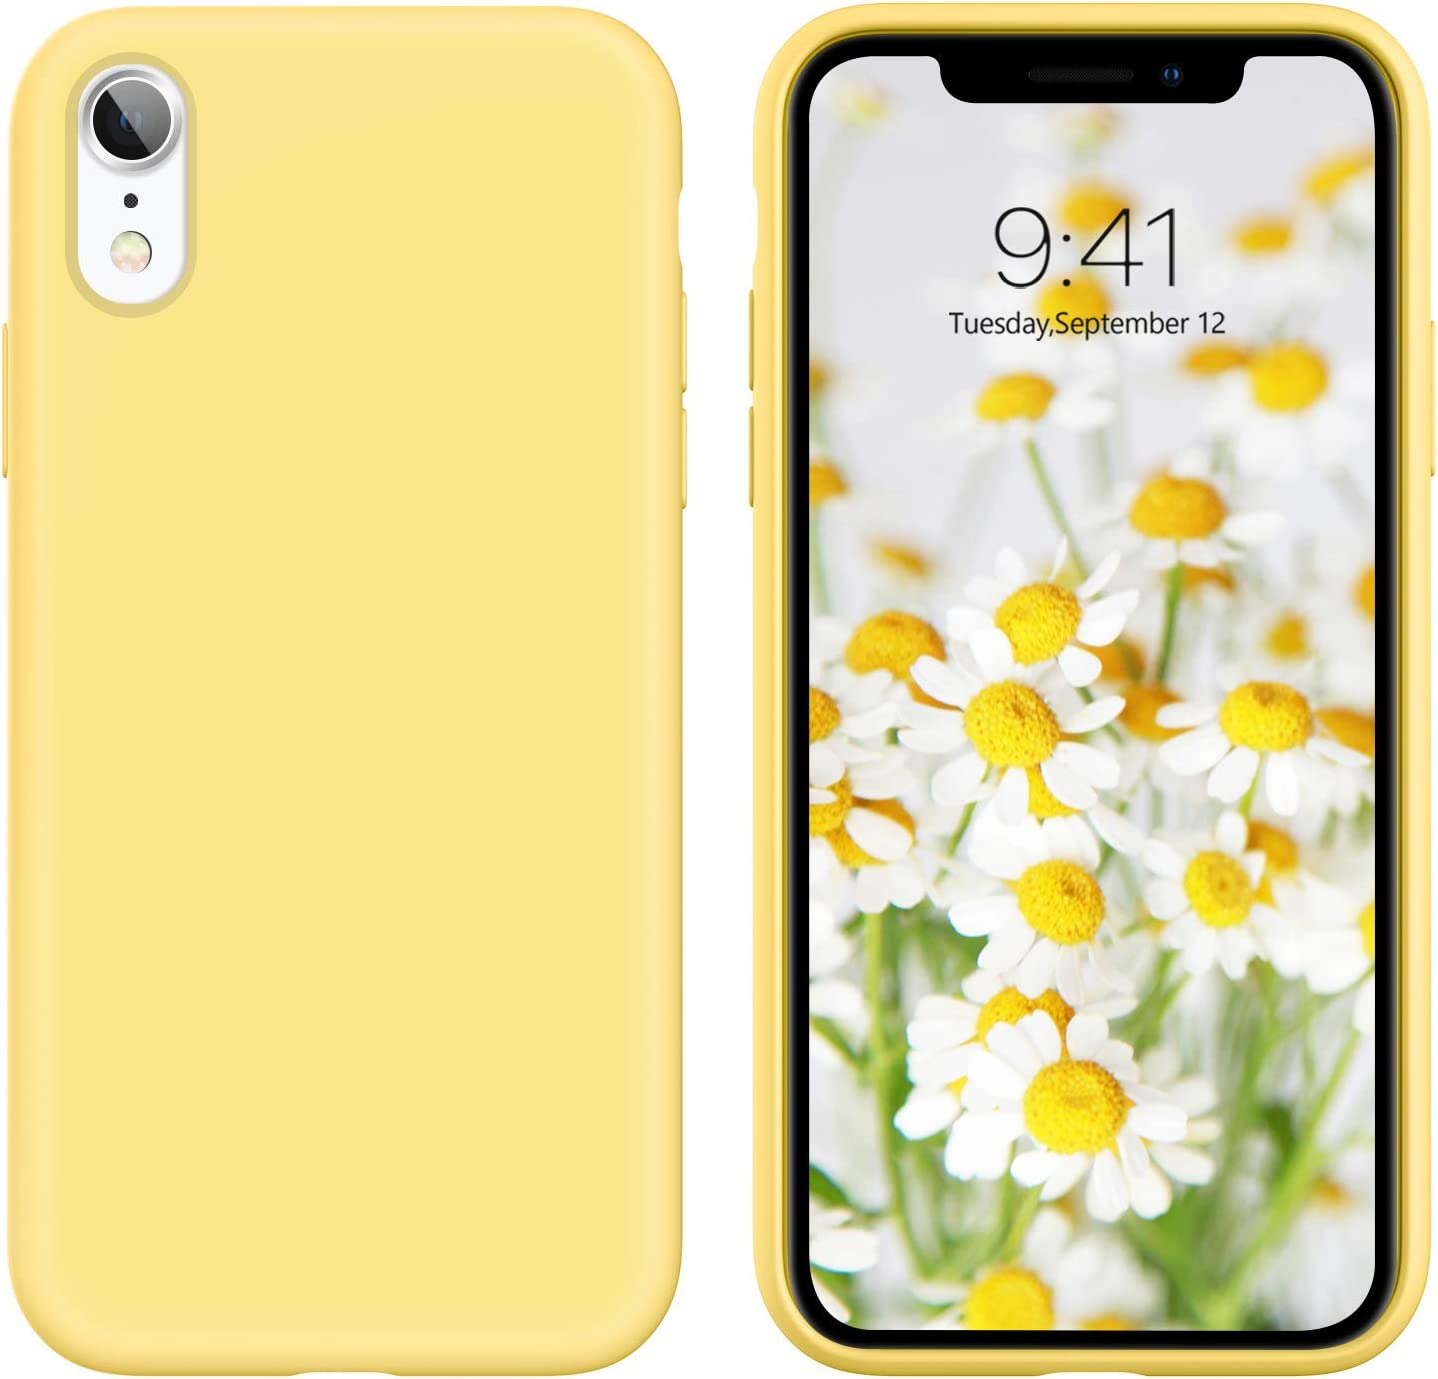 DUEDUE iPhone XR Case, Liquid Silicone Soft Gel Rubber Slim Cover with Microfiber Cloth Lining Cushion Shockproof Full Protective Anti Scratch Case for iPhone XR 6.1